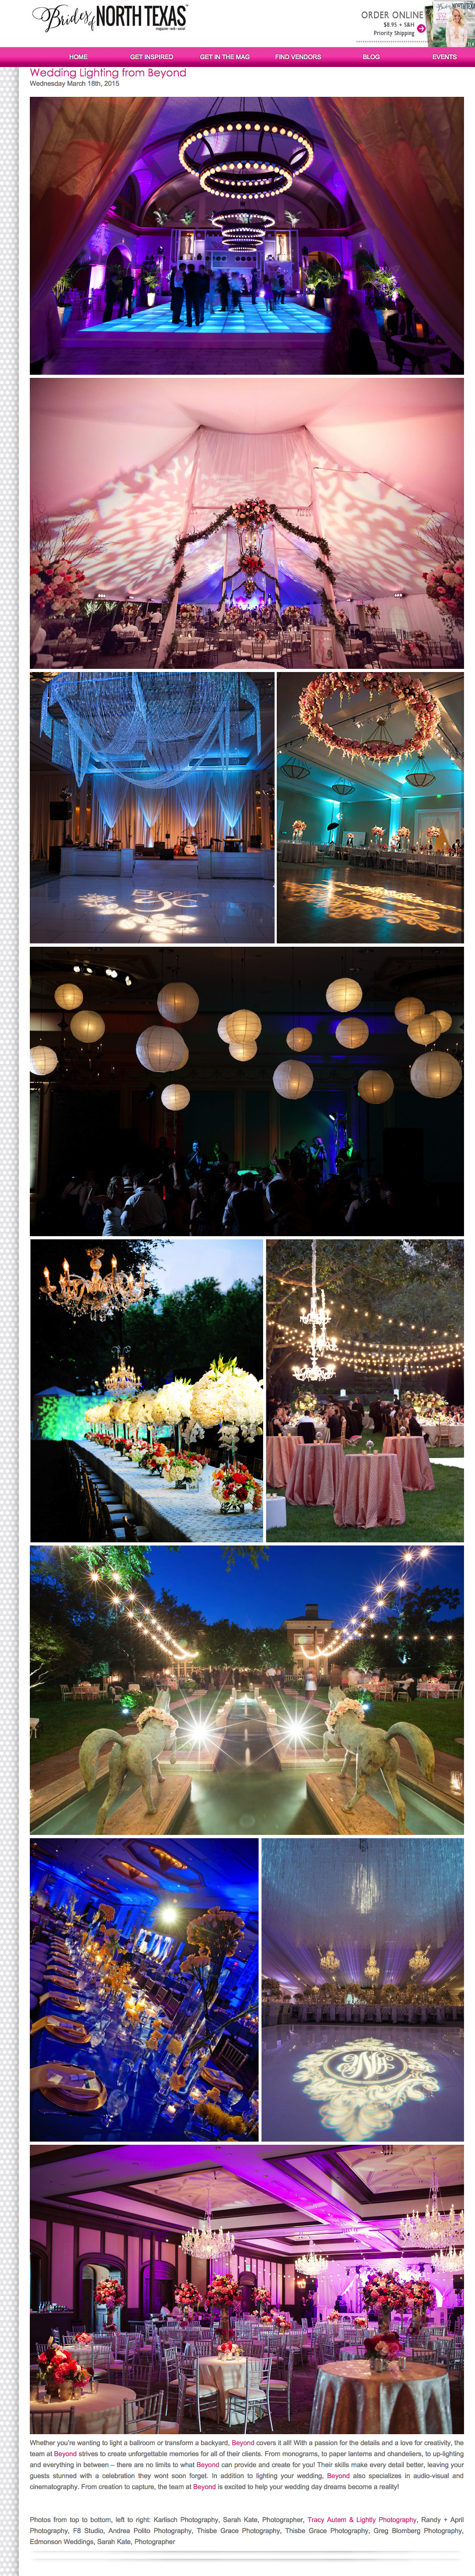 screencapture-www-bridesofnorthtexas-com-dfw-wedding-blog-wedding-lighting-beyond